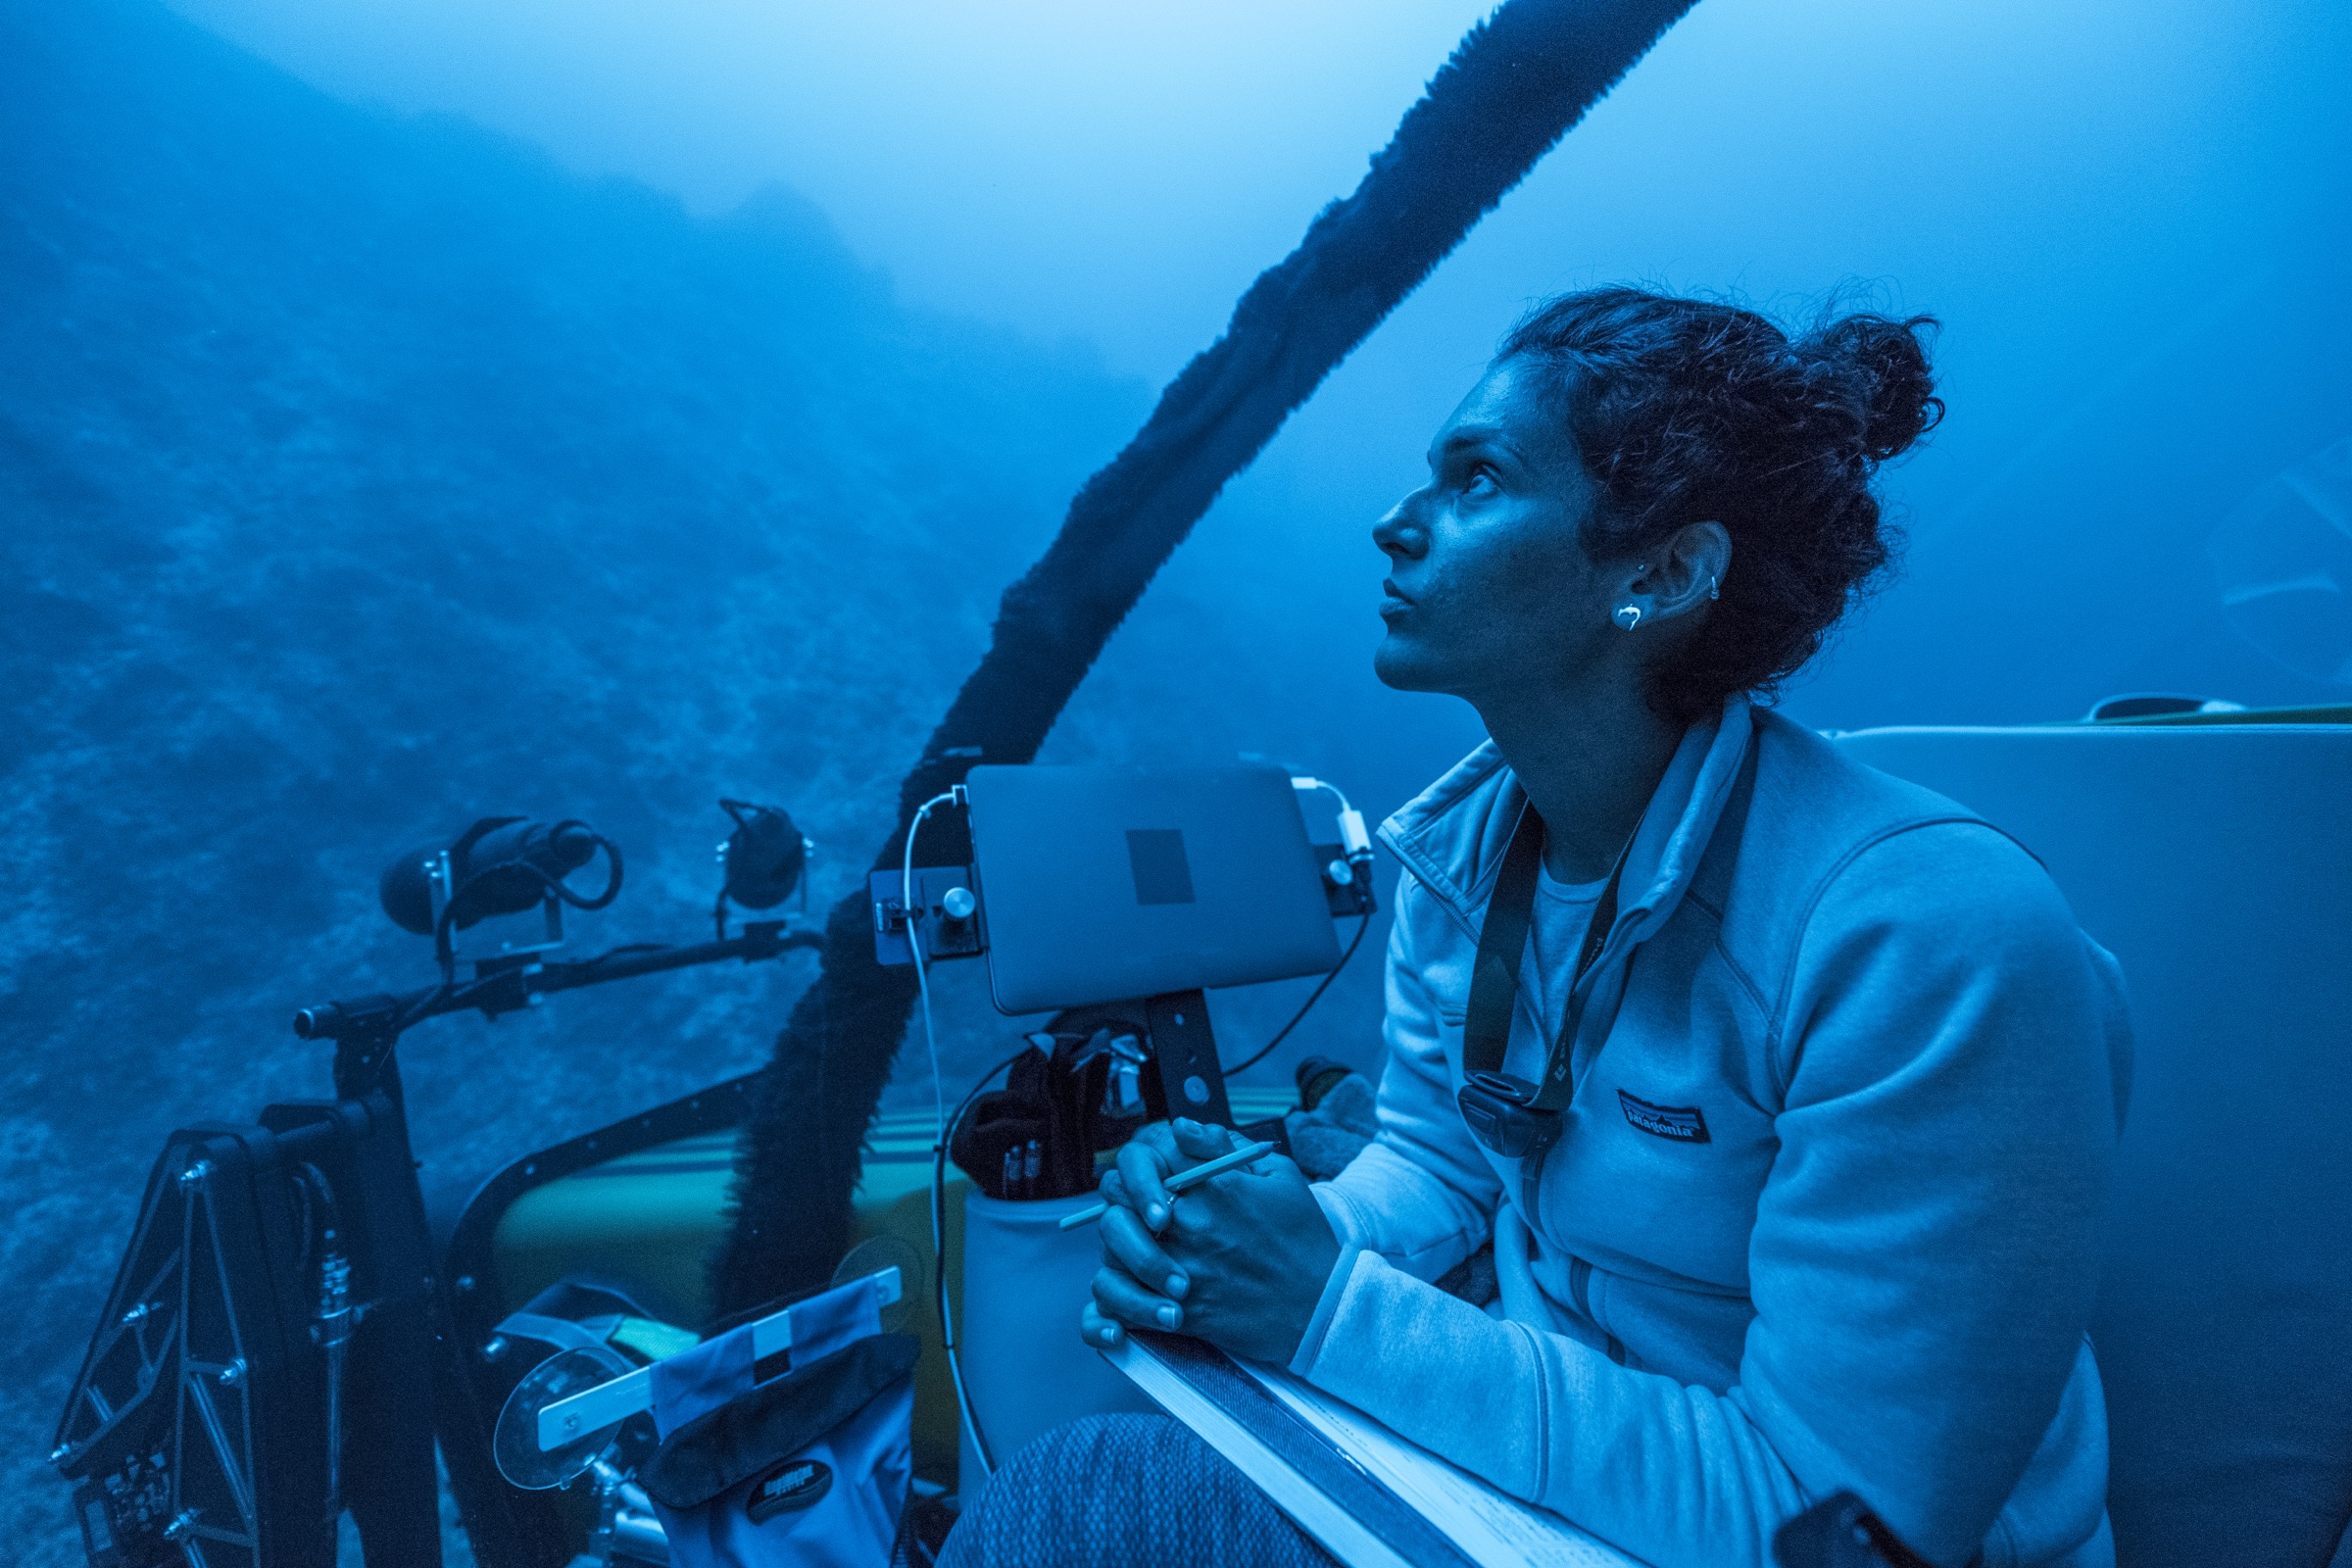 Diva Amon, a deep-sea biologist from the Natural History Museum of London, UK, takes in her surroundings as the submersible Nadir descends into the deep ocean near Saint Peter and Saint Paul Archipelago. Photograph by Novus Select